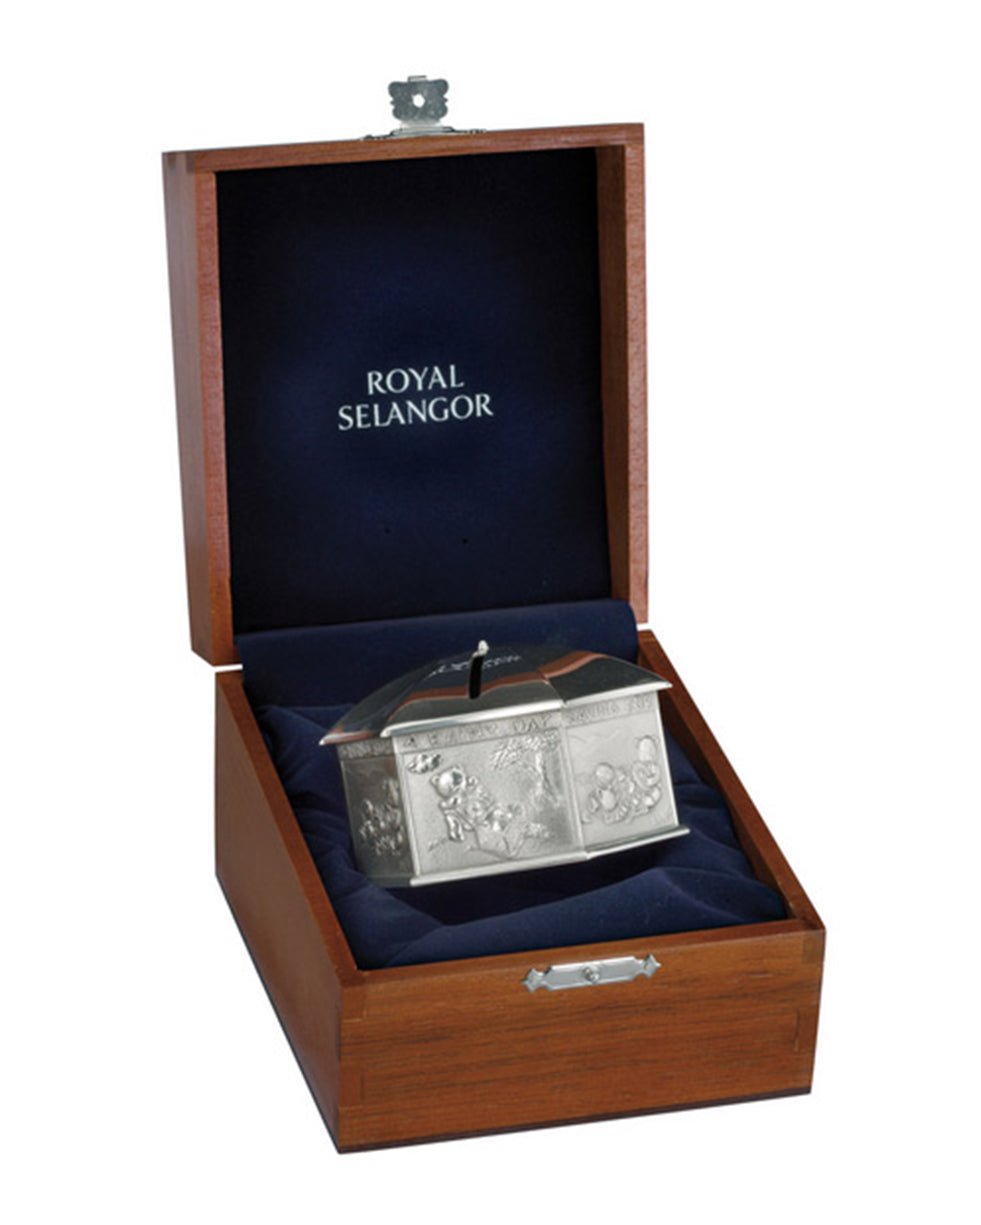 Royal Selangor Pewter Rainy Day Umbrella Coin Box